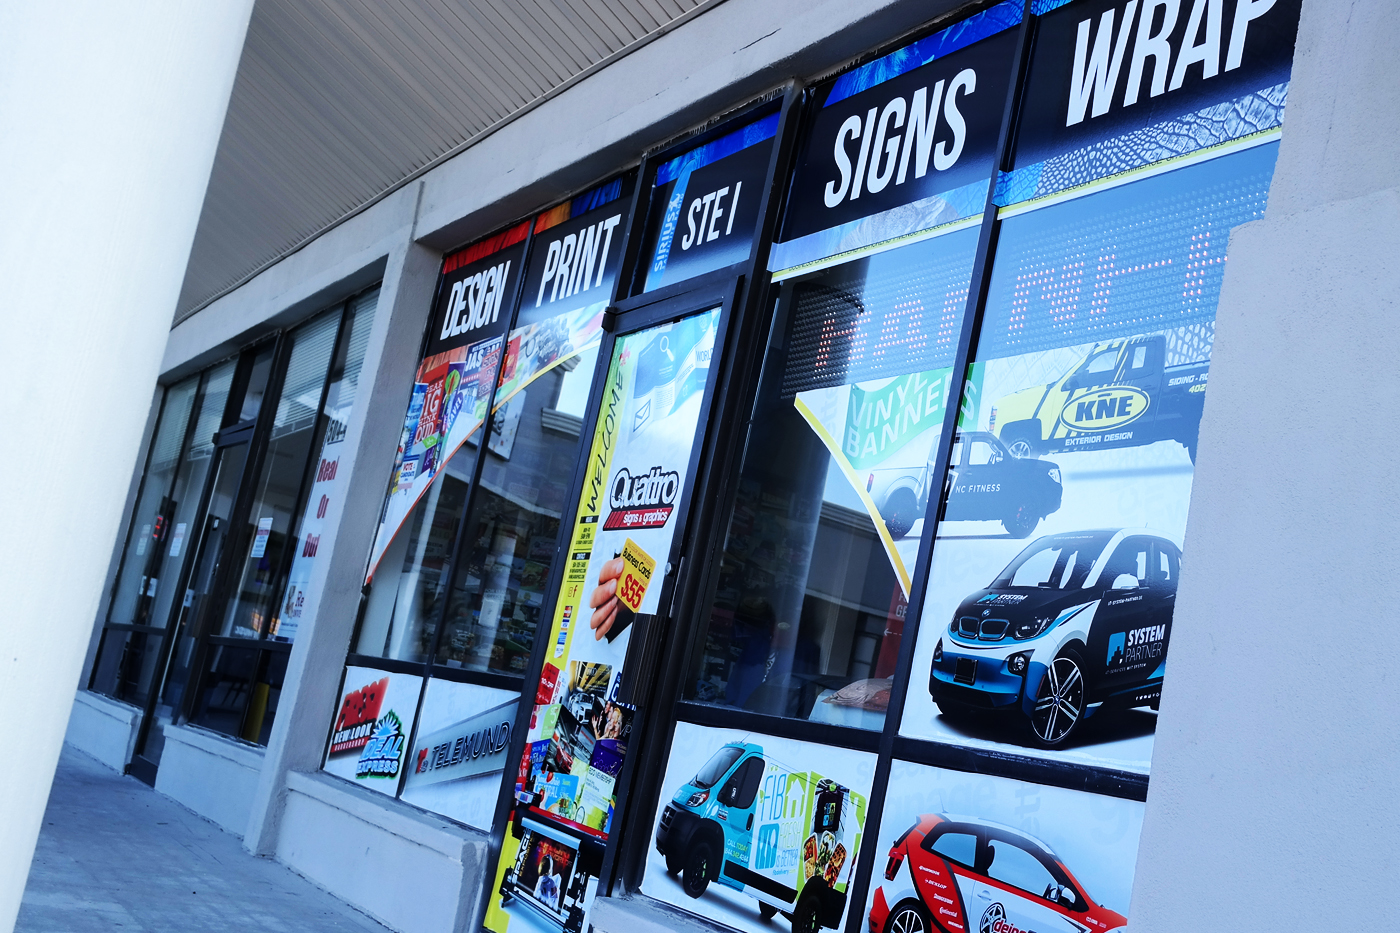 Quattro signs and graphics 4345 williams blvd kenner la 70065 yp reheart Choice Image